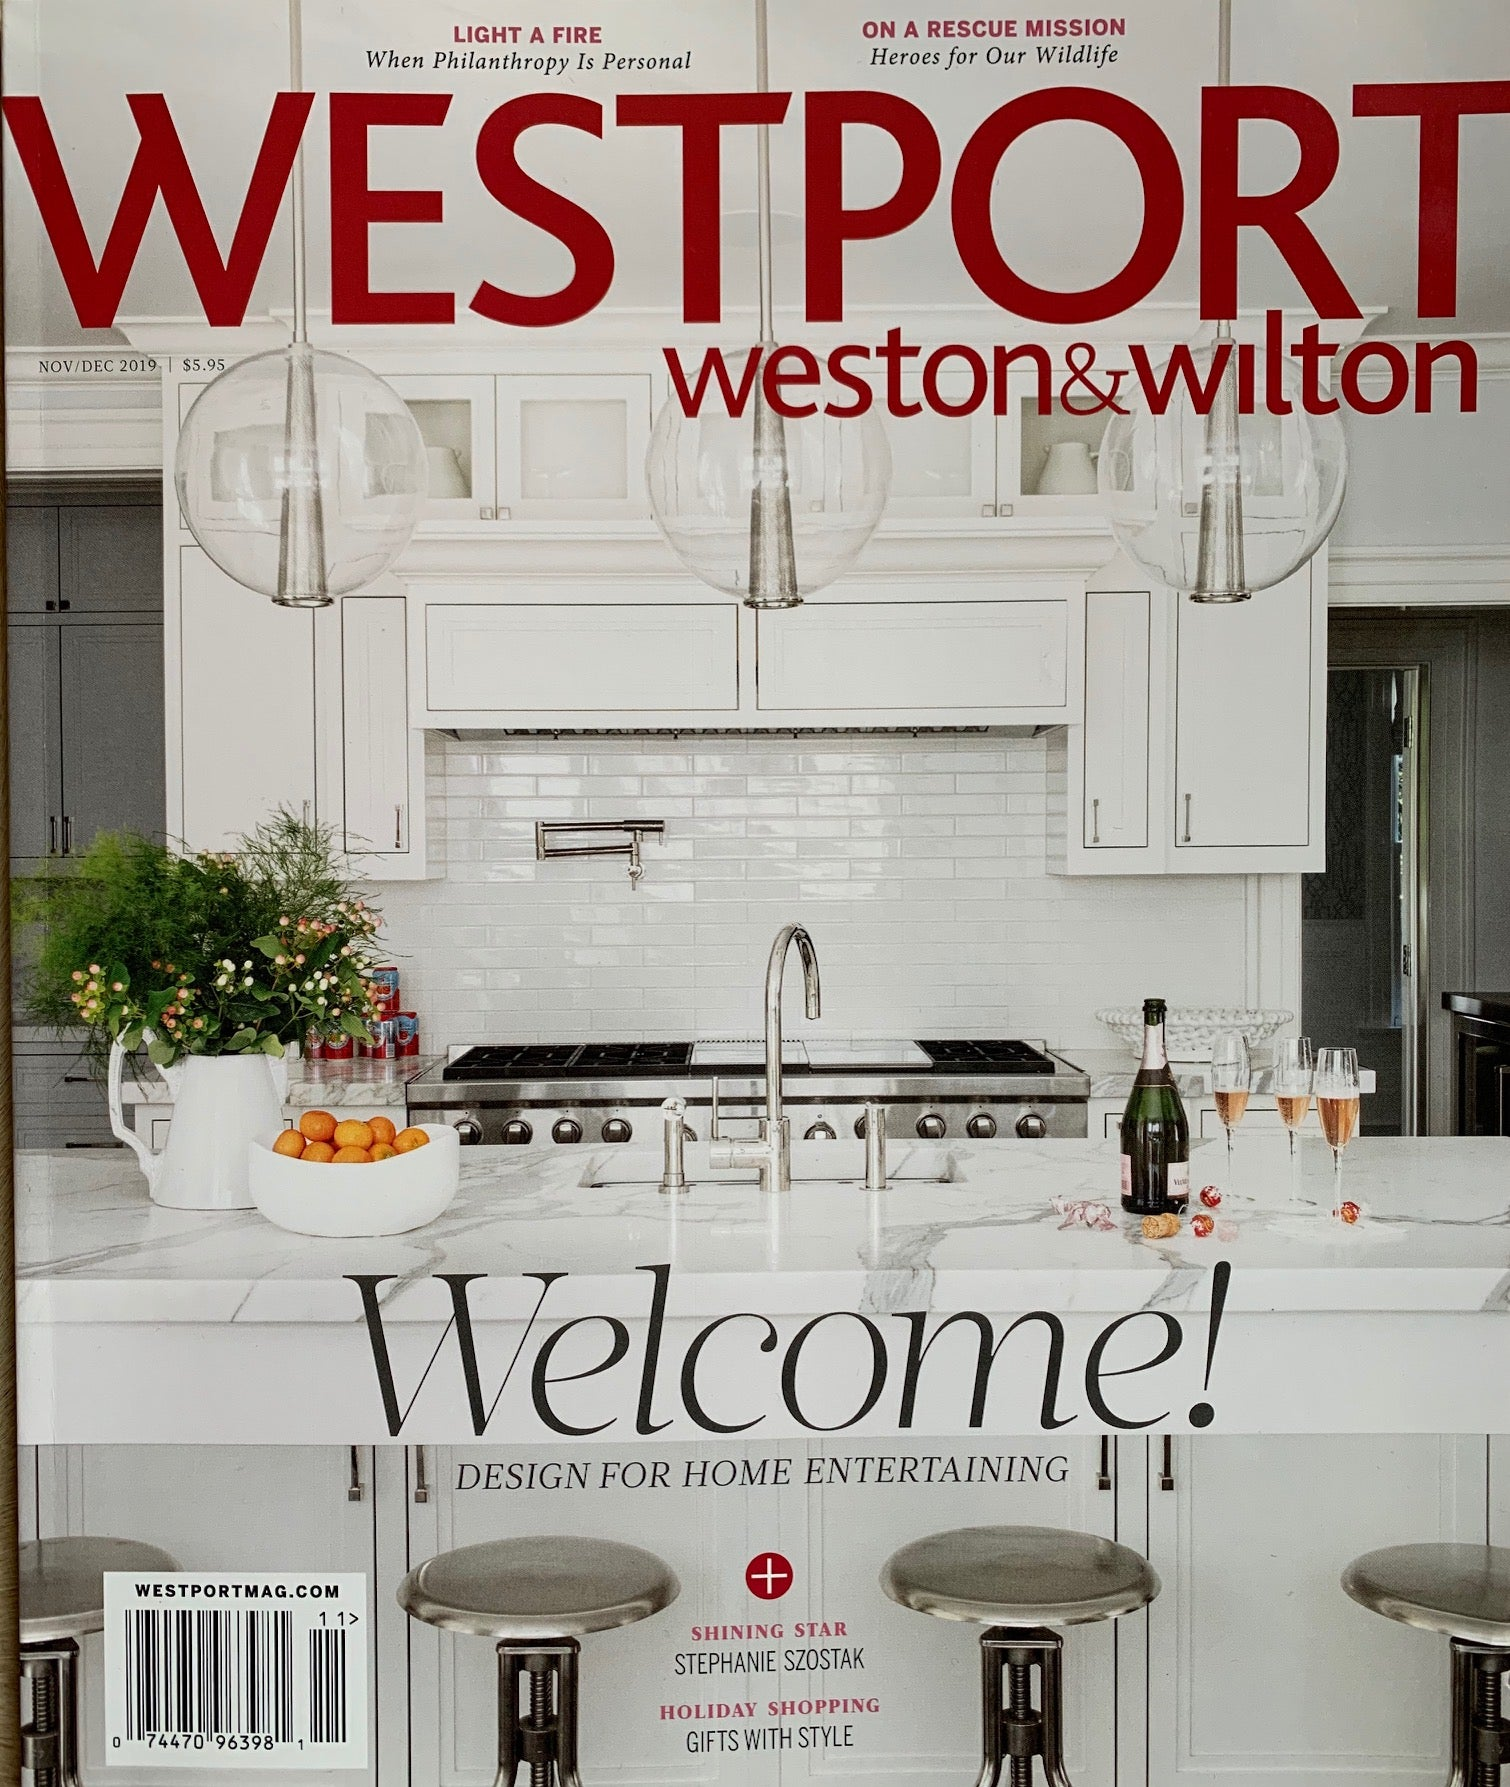 Westport Magazine Nov/Dec 2019